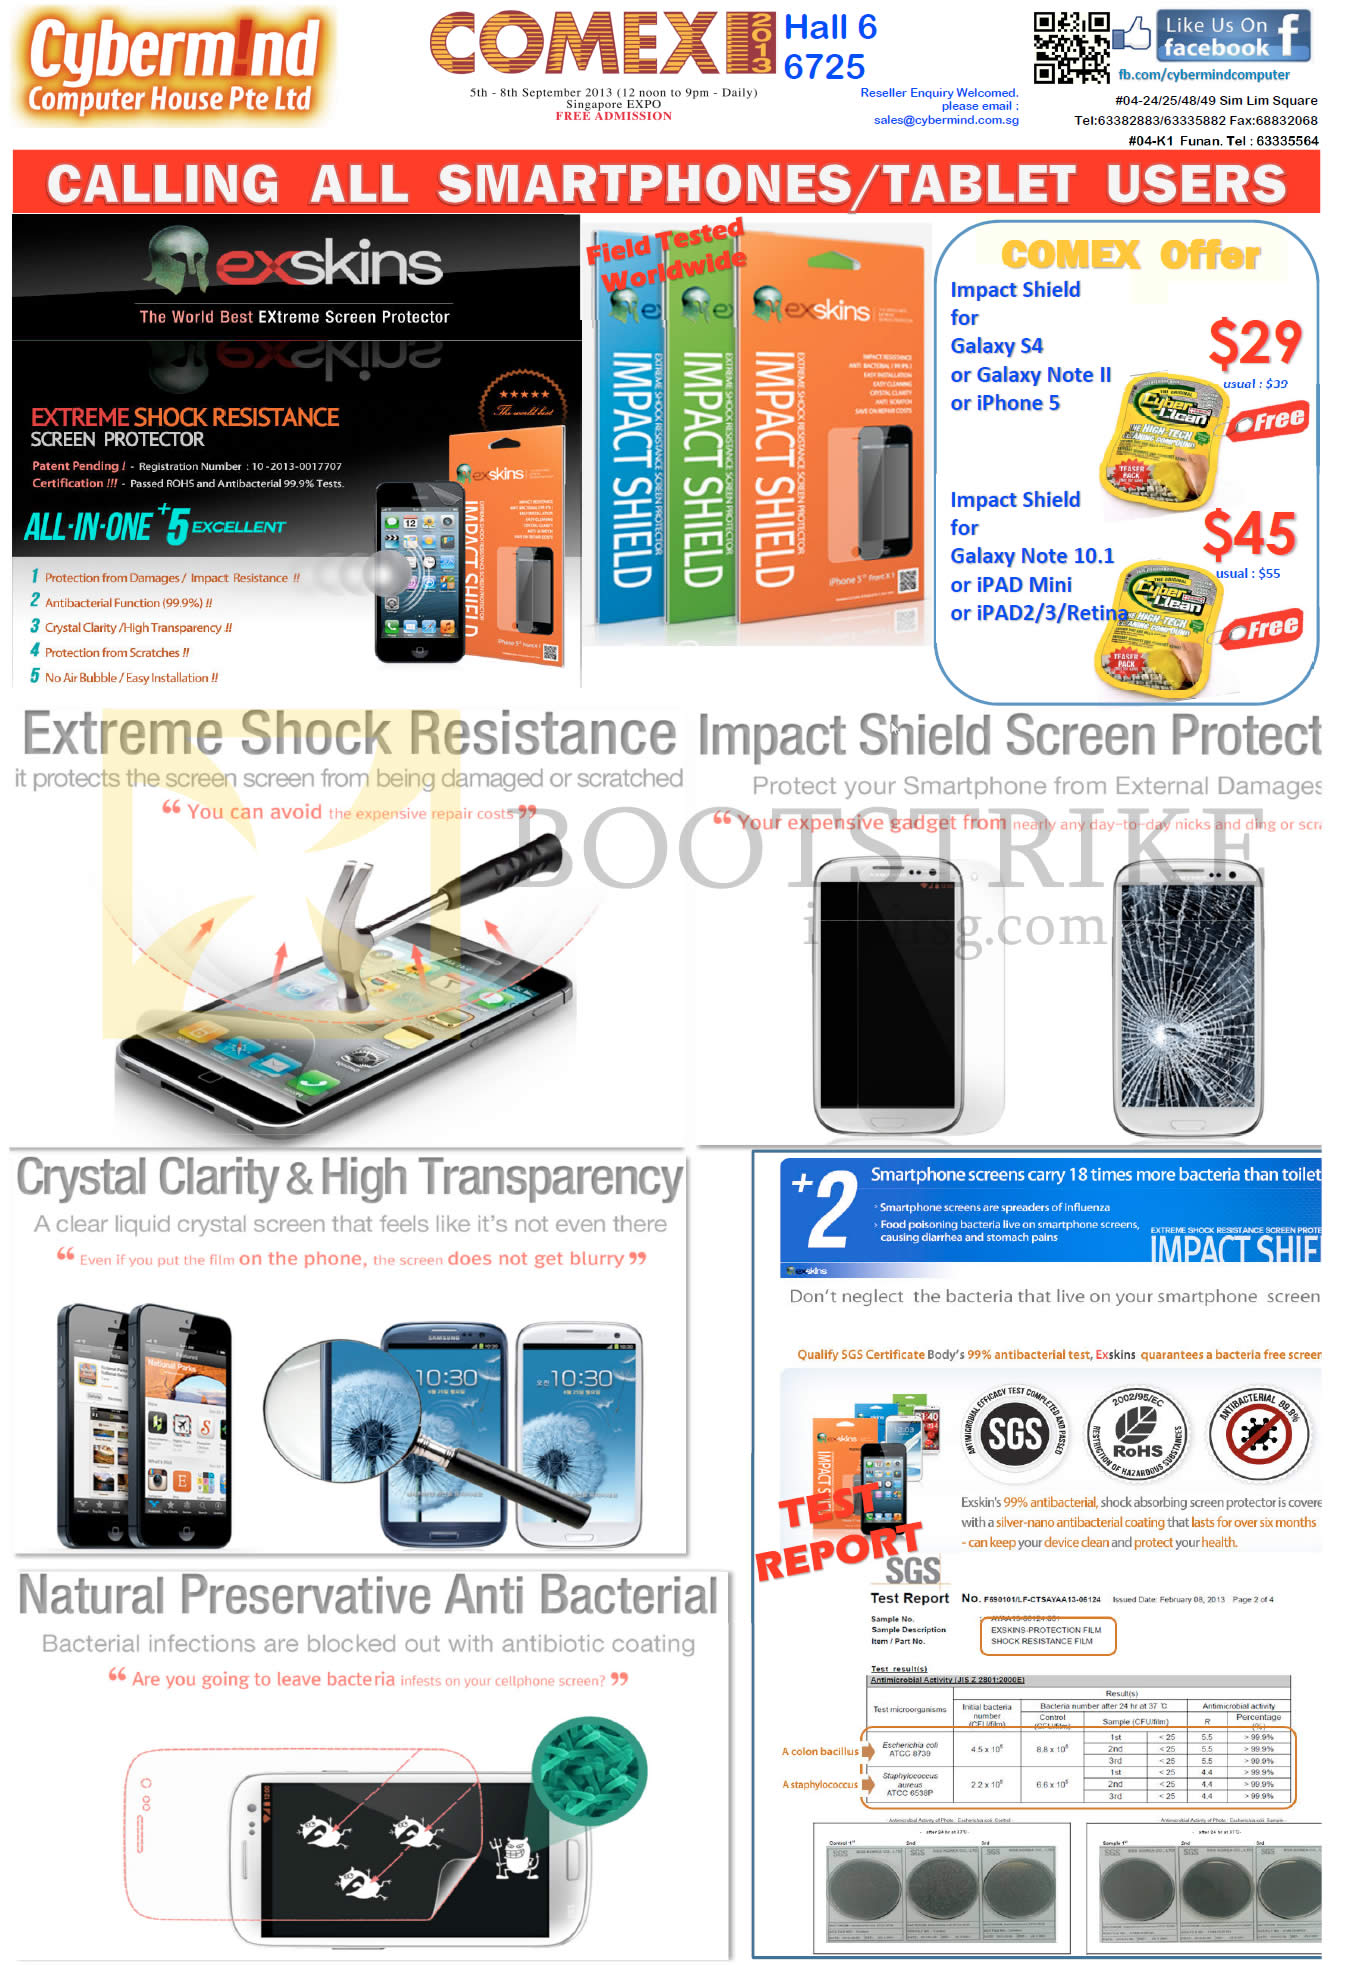 COMEX 2013 price list image brochure of Cybermind Exskin Screen Protector, CyberClean Impact Shield